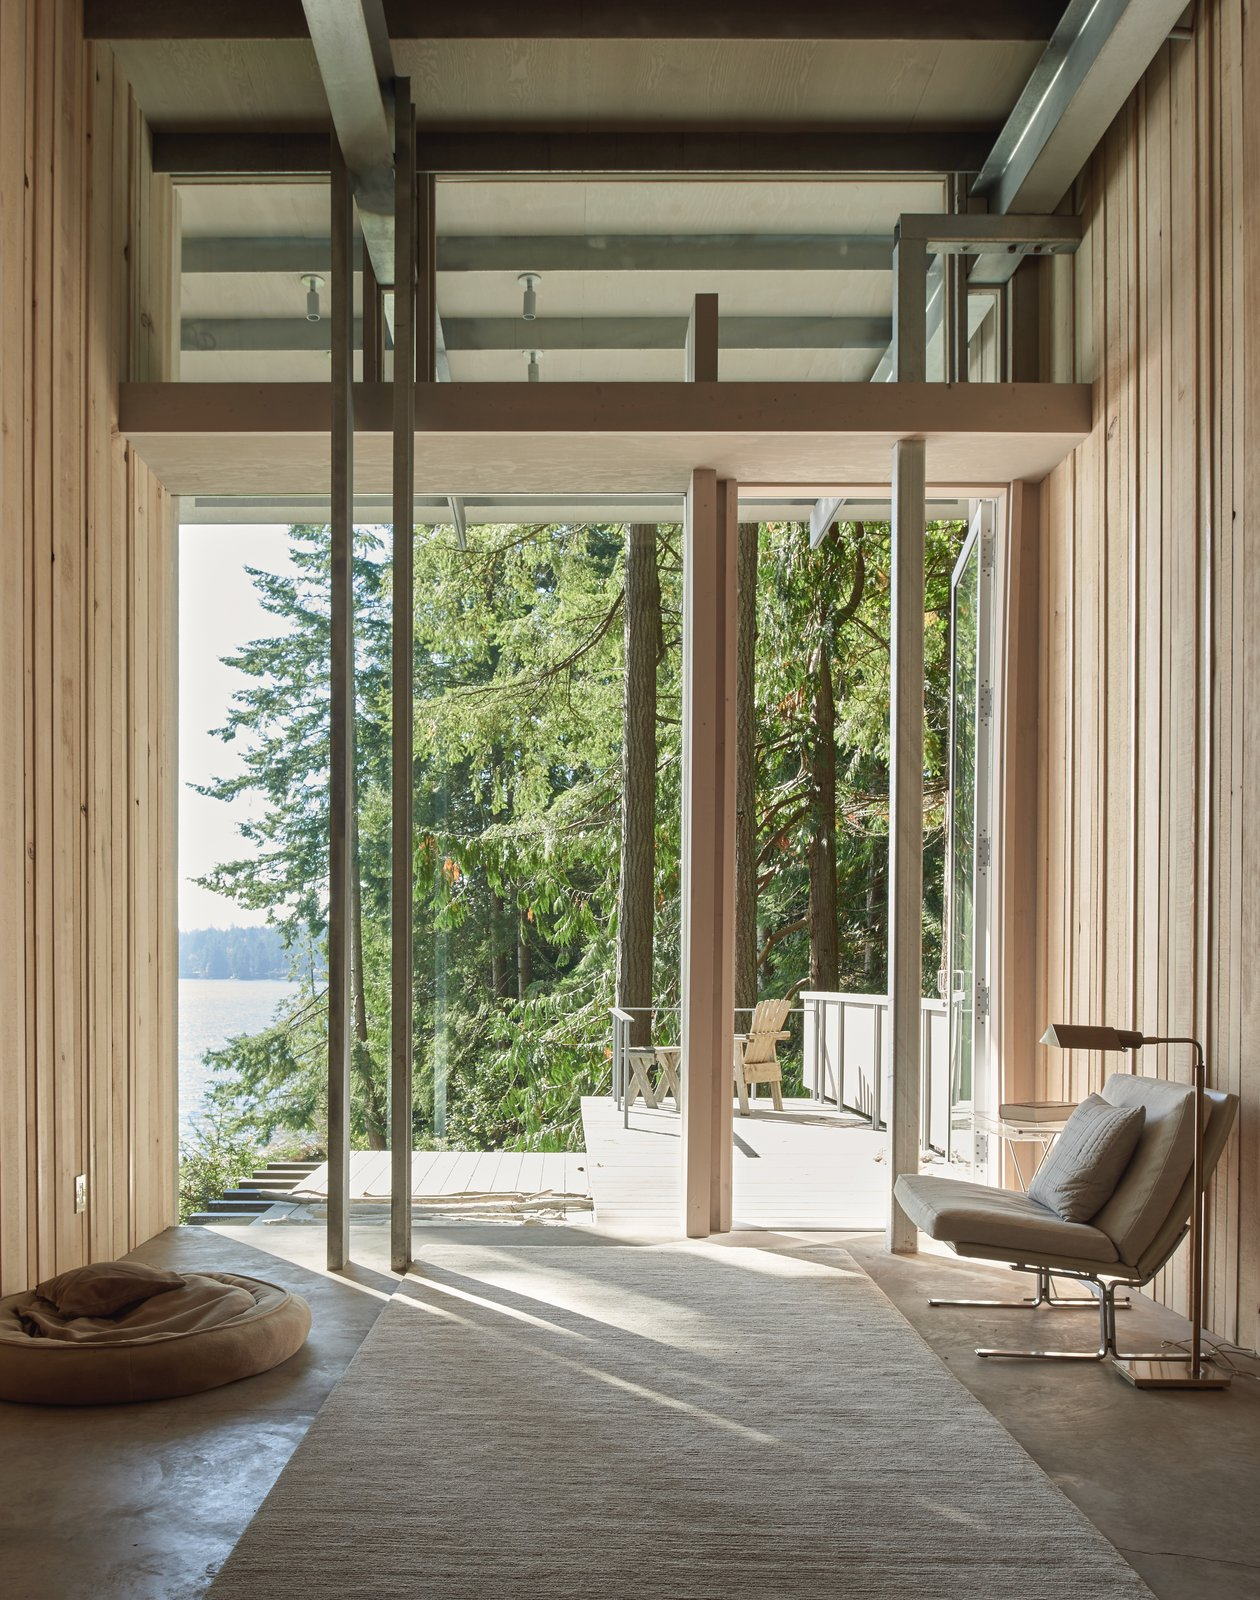 Living Room, Chair, and Rug Floor Cabin at Longbranch | Olson Kundig  Photo 5 of 6 in Top 5 Homes of the Week With Amazing Outdoor Spaces from Cabin in Longbranch